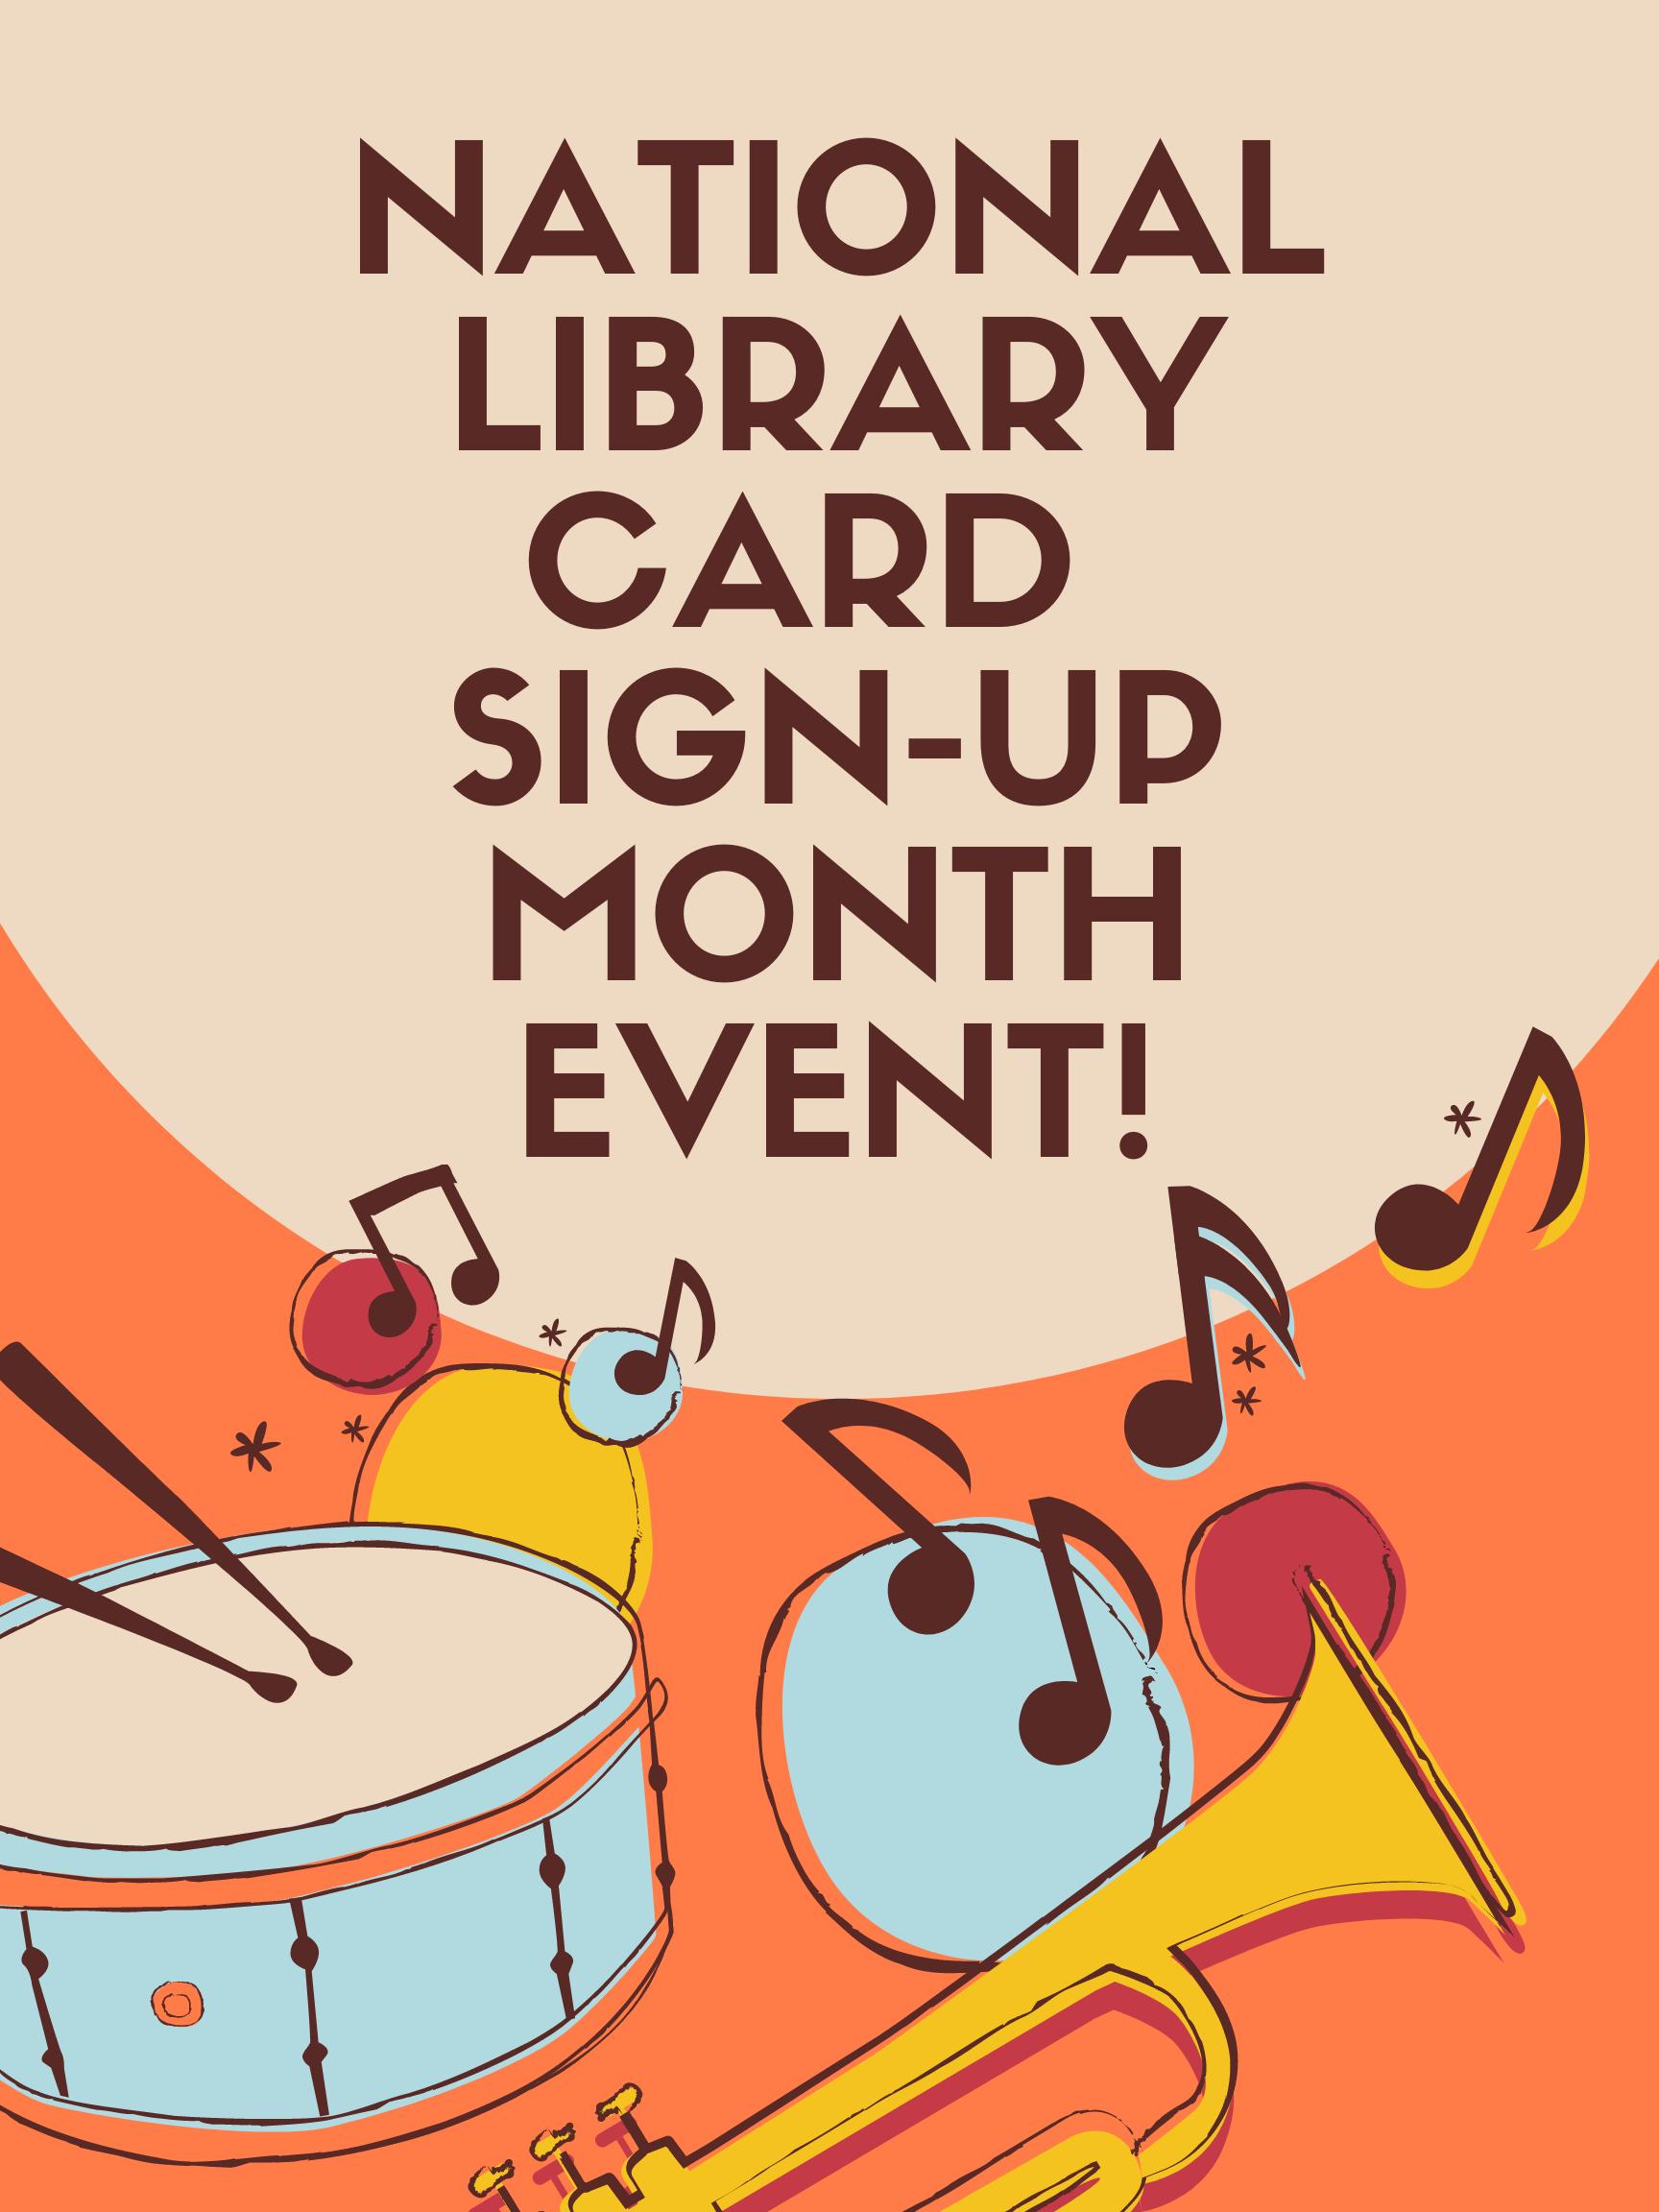 National Library Card Sign-Up Month Event!